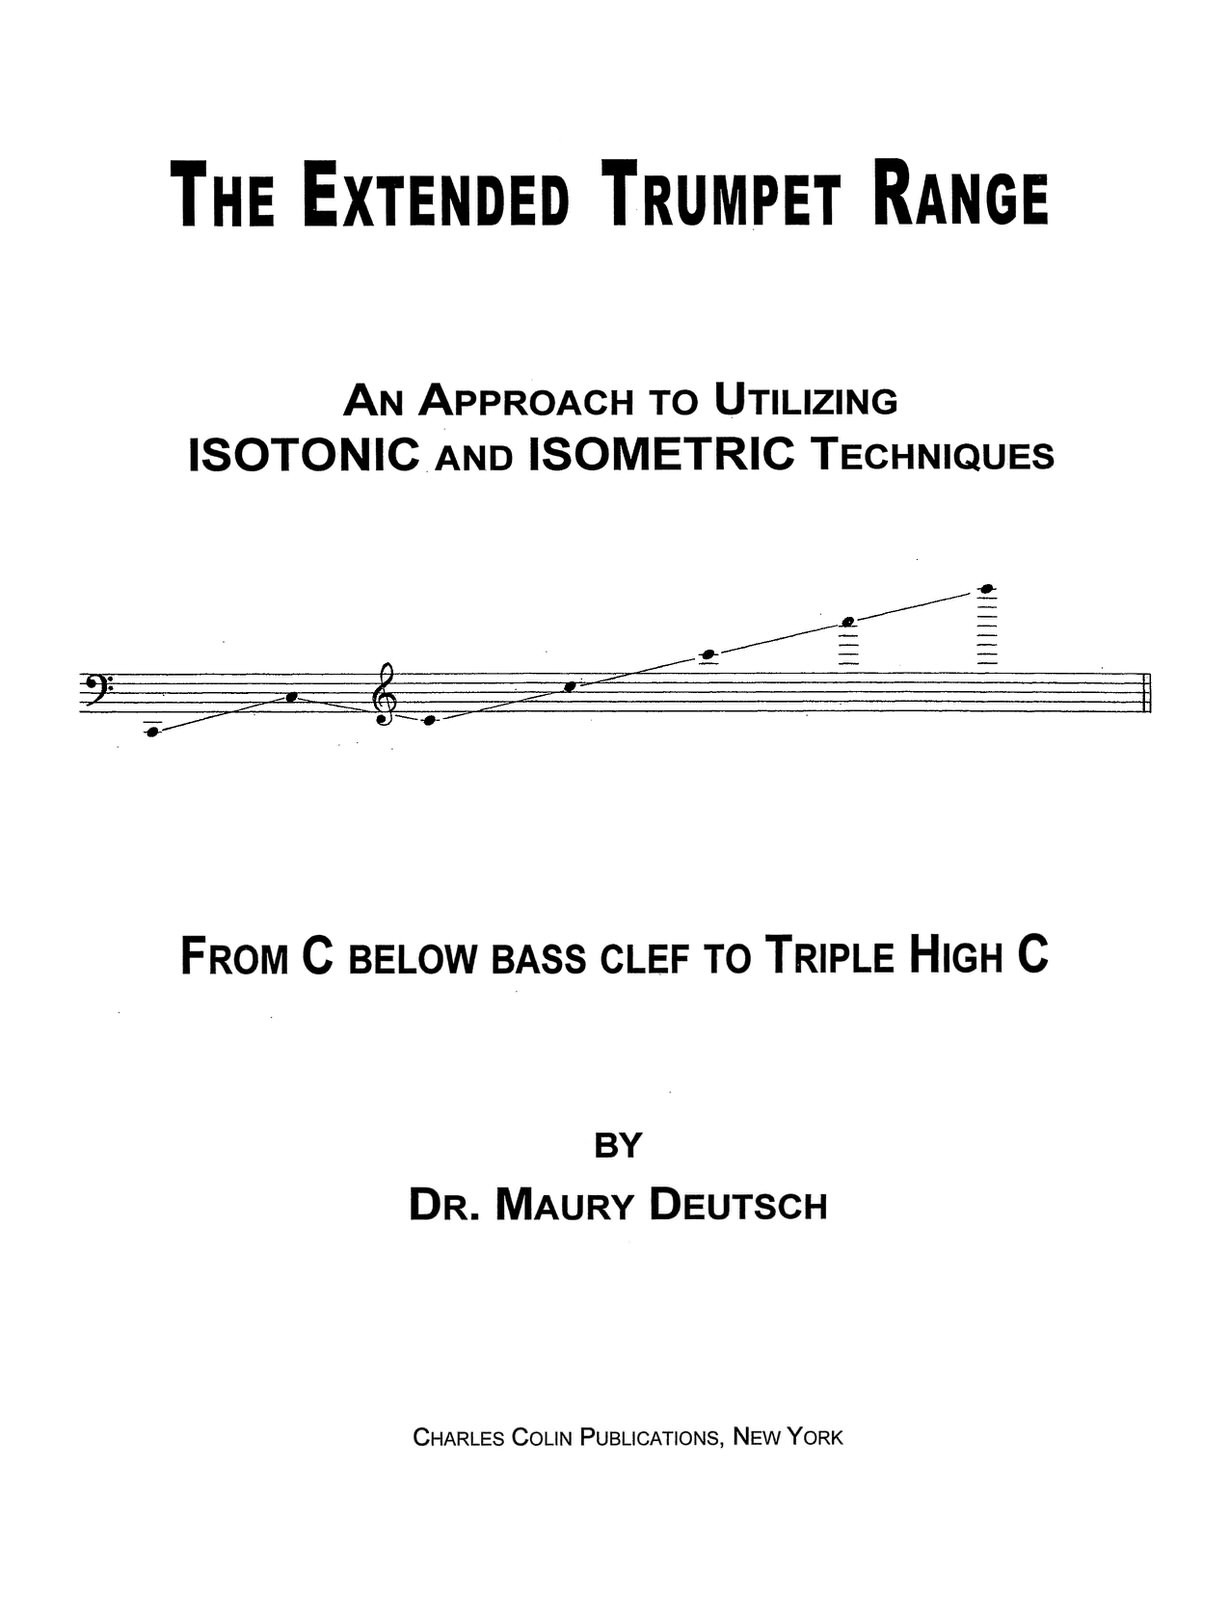 Deutsch, The Extended Trumpet Range 2